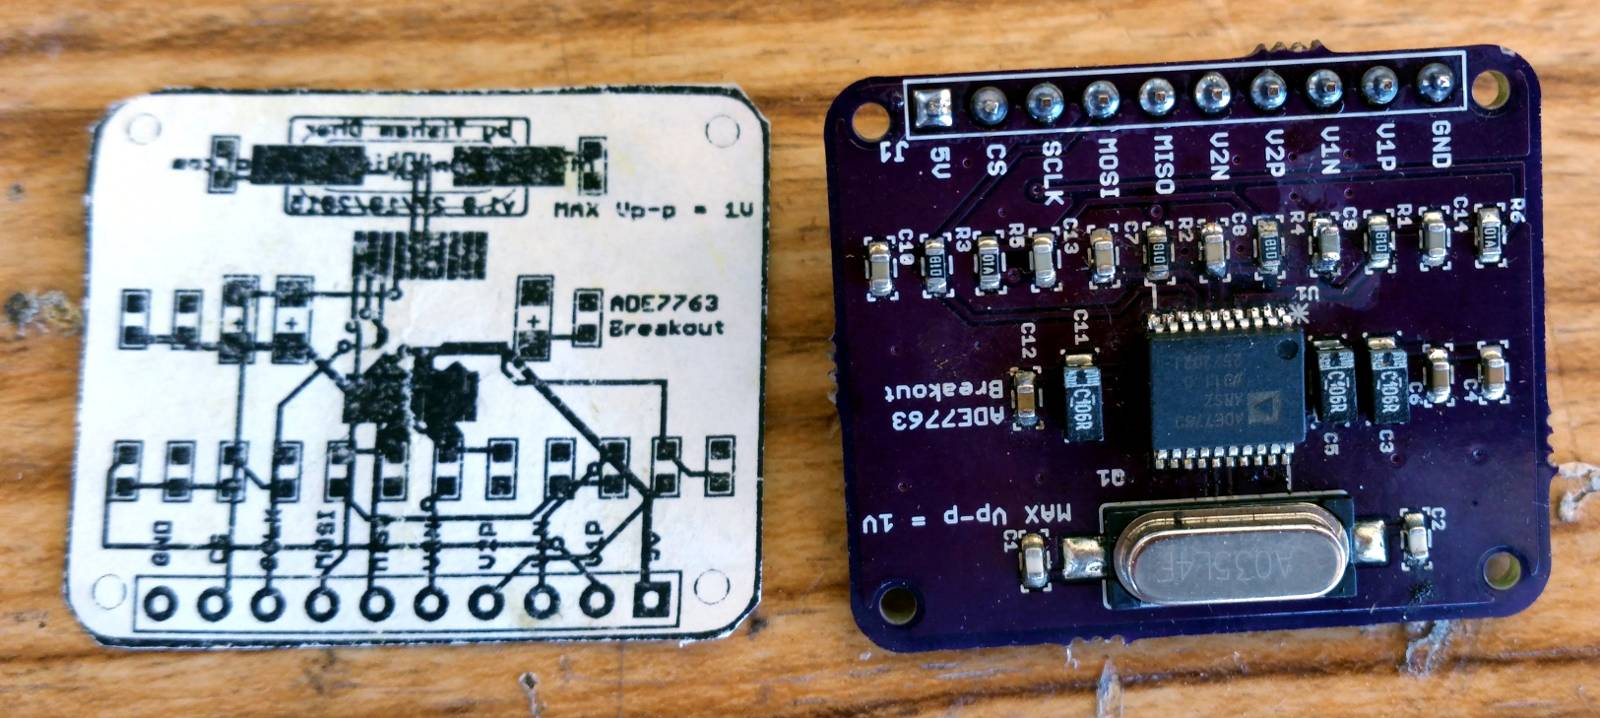 hight resolution of i have created a small ade7763 breakout board to test its functionality using the teensy microcontroller i have 2 working builds of the board